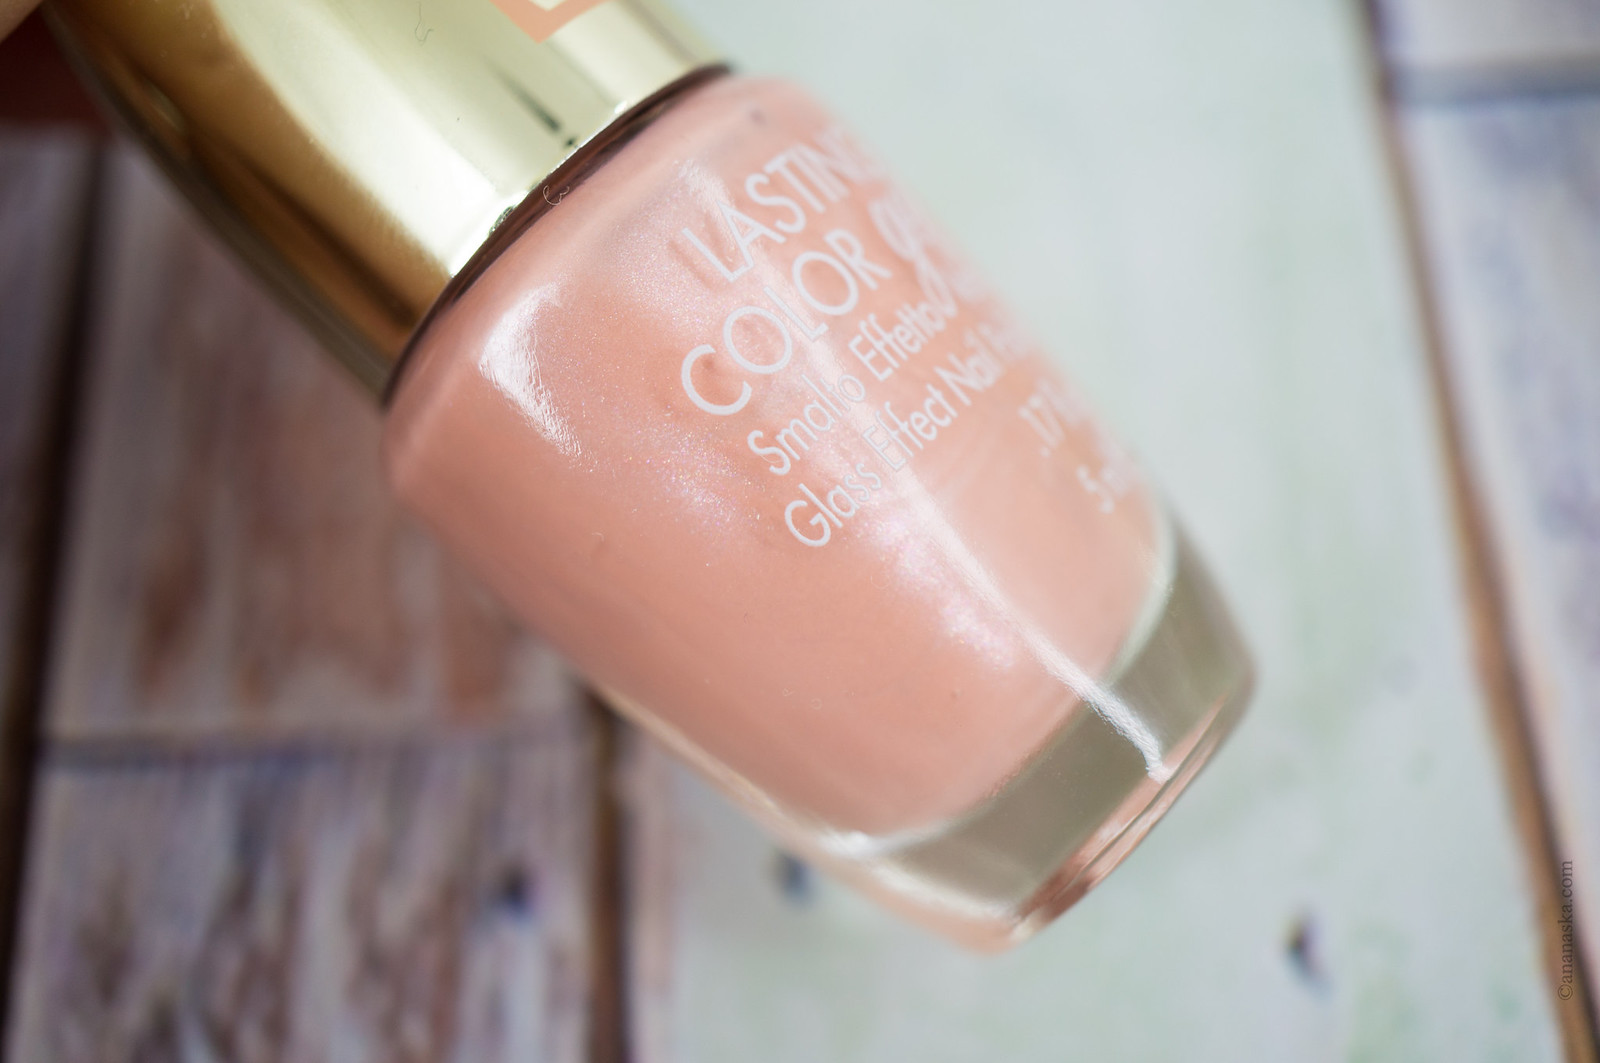 Pink Muse Lasting Color Gel 176 Apricot Pink